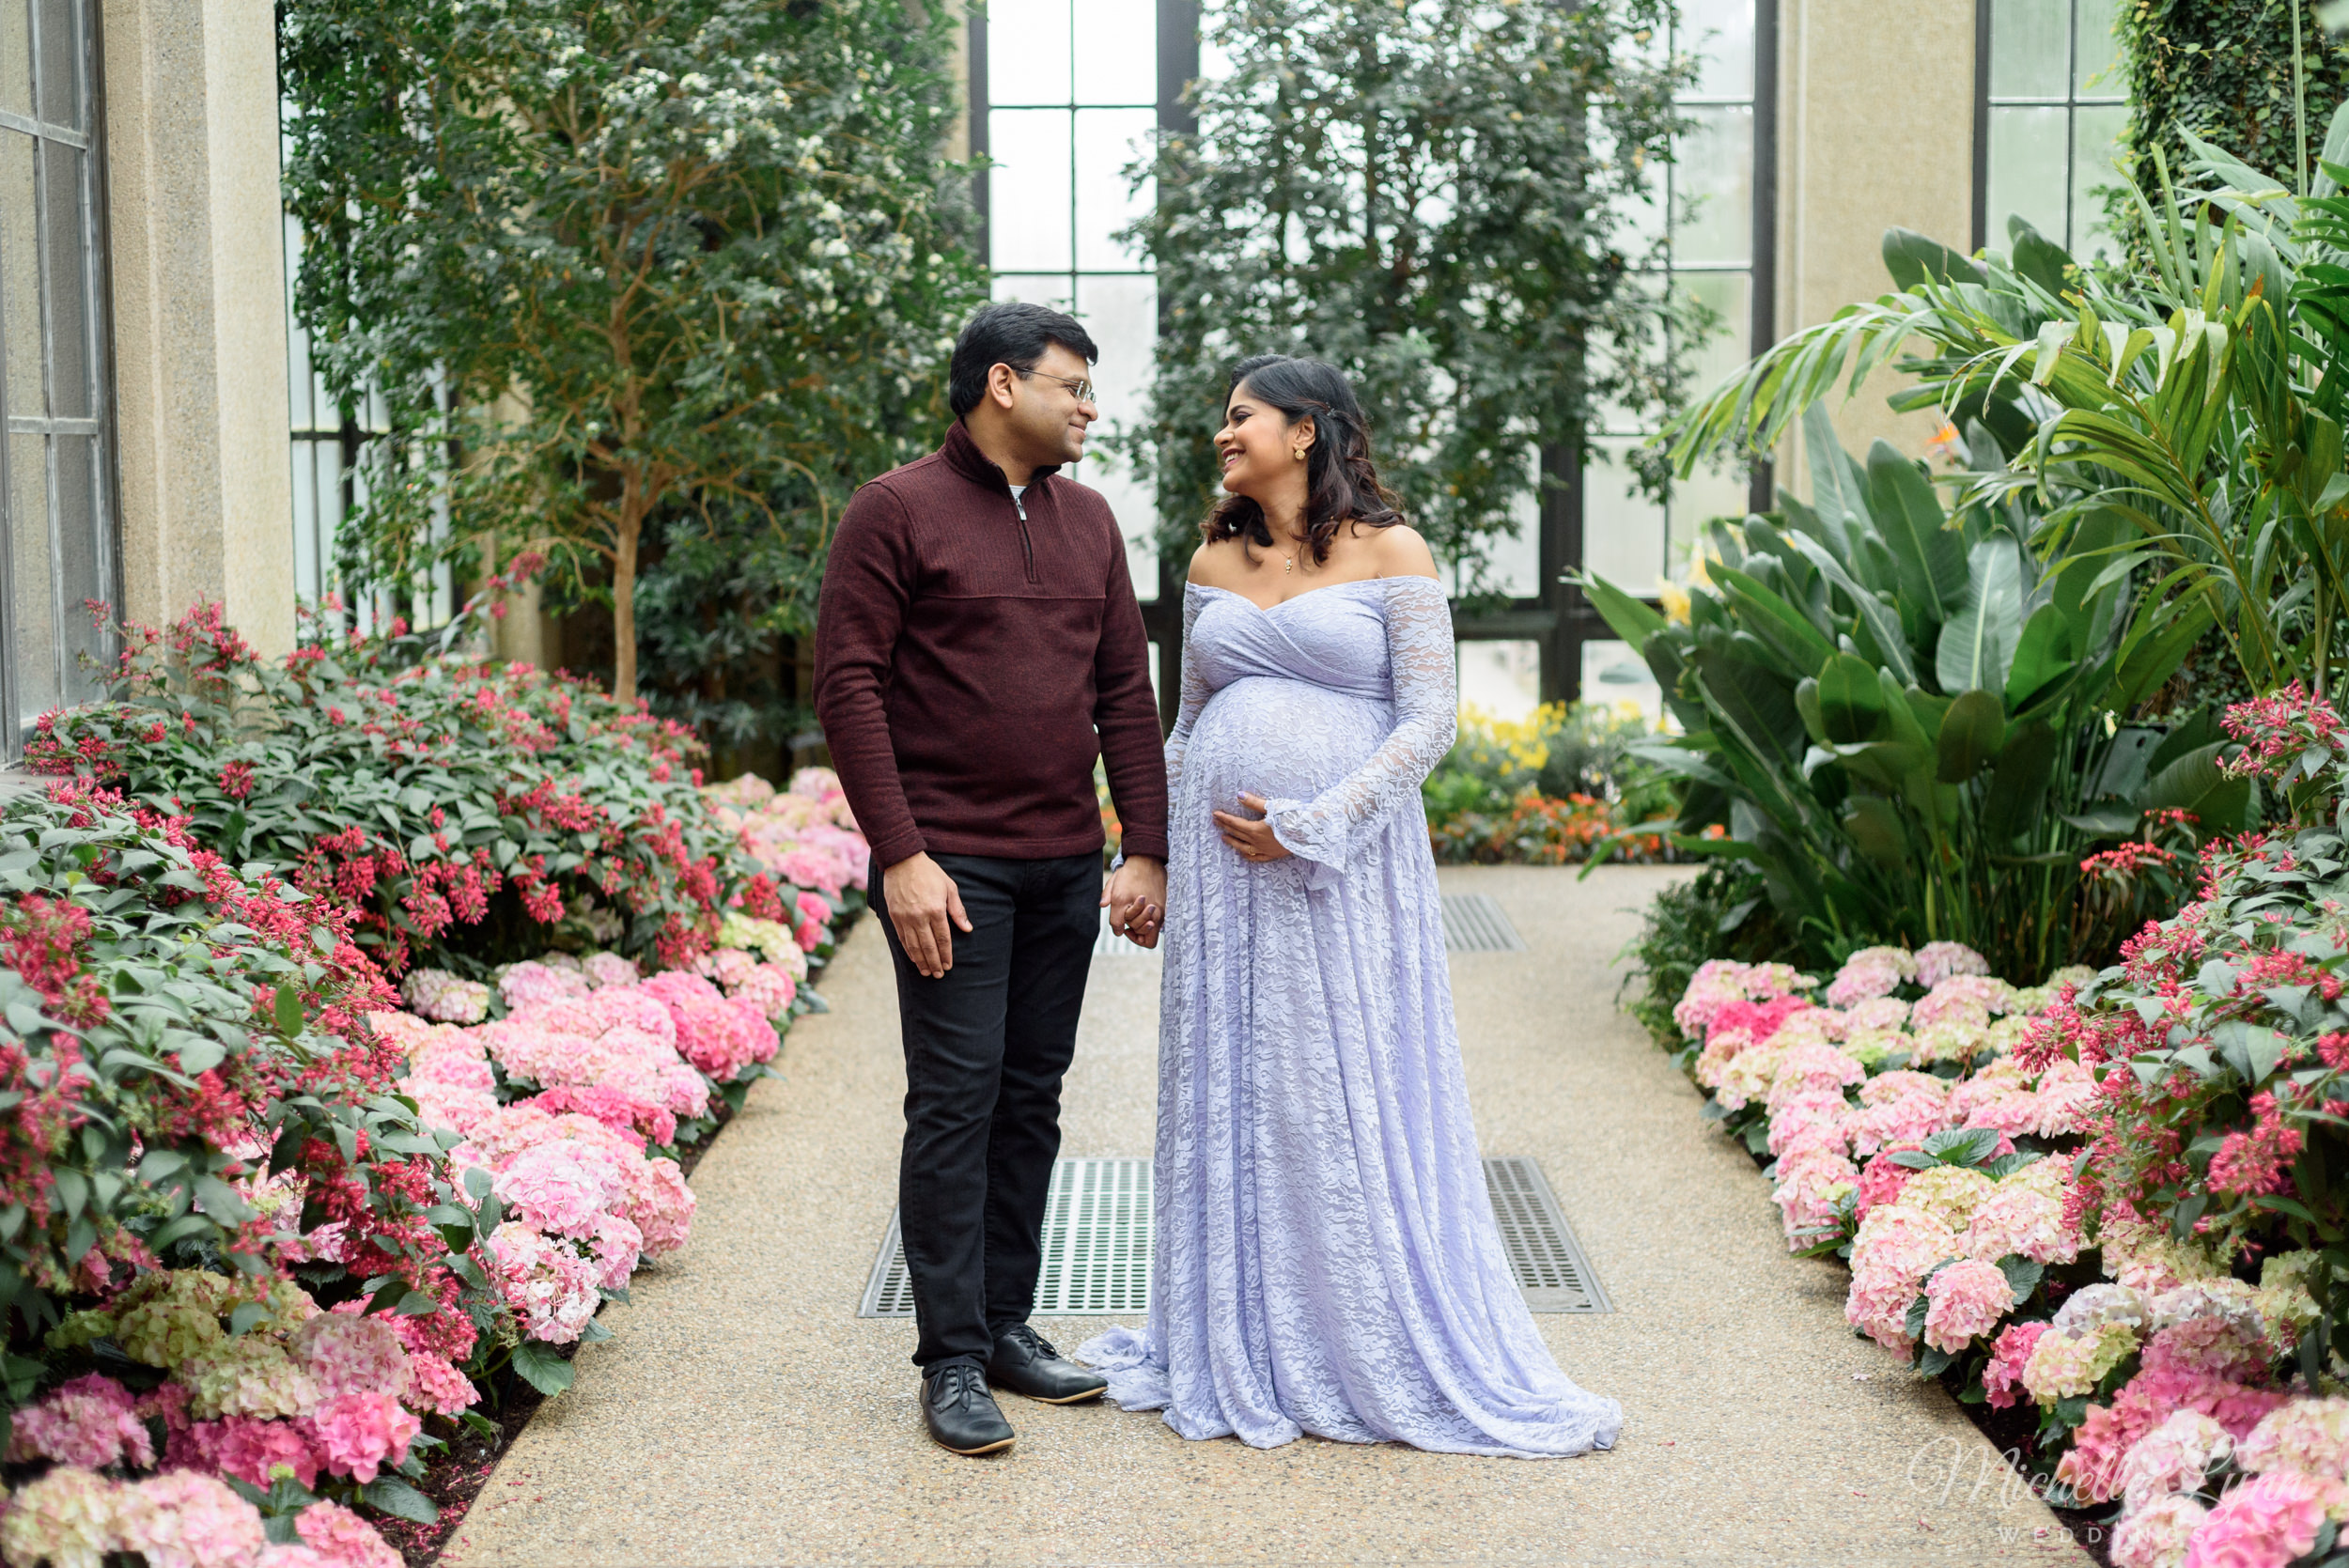 mlw-longwood-gardens-maternity-photos-4.jpg